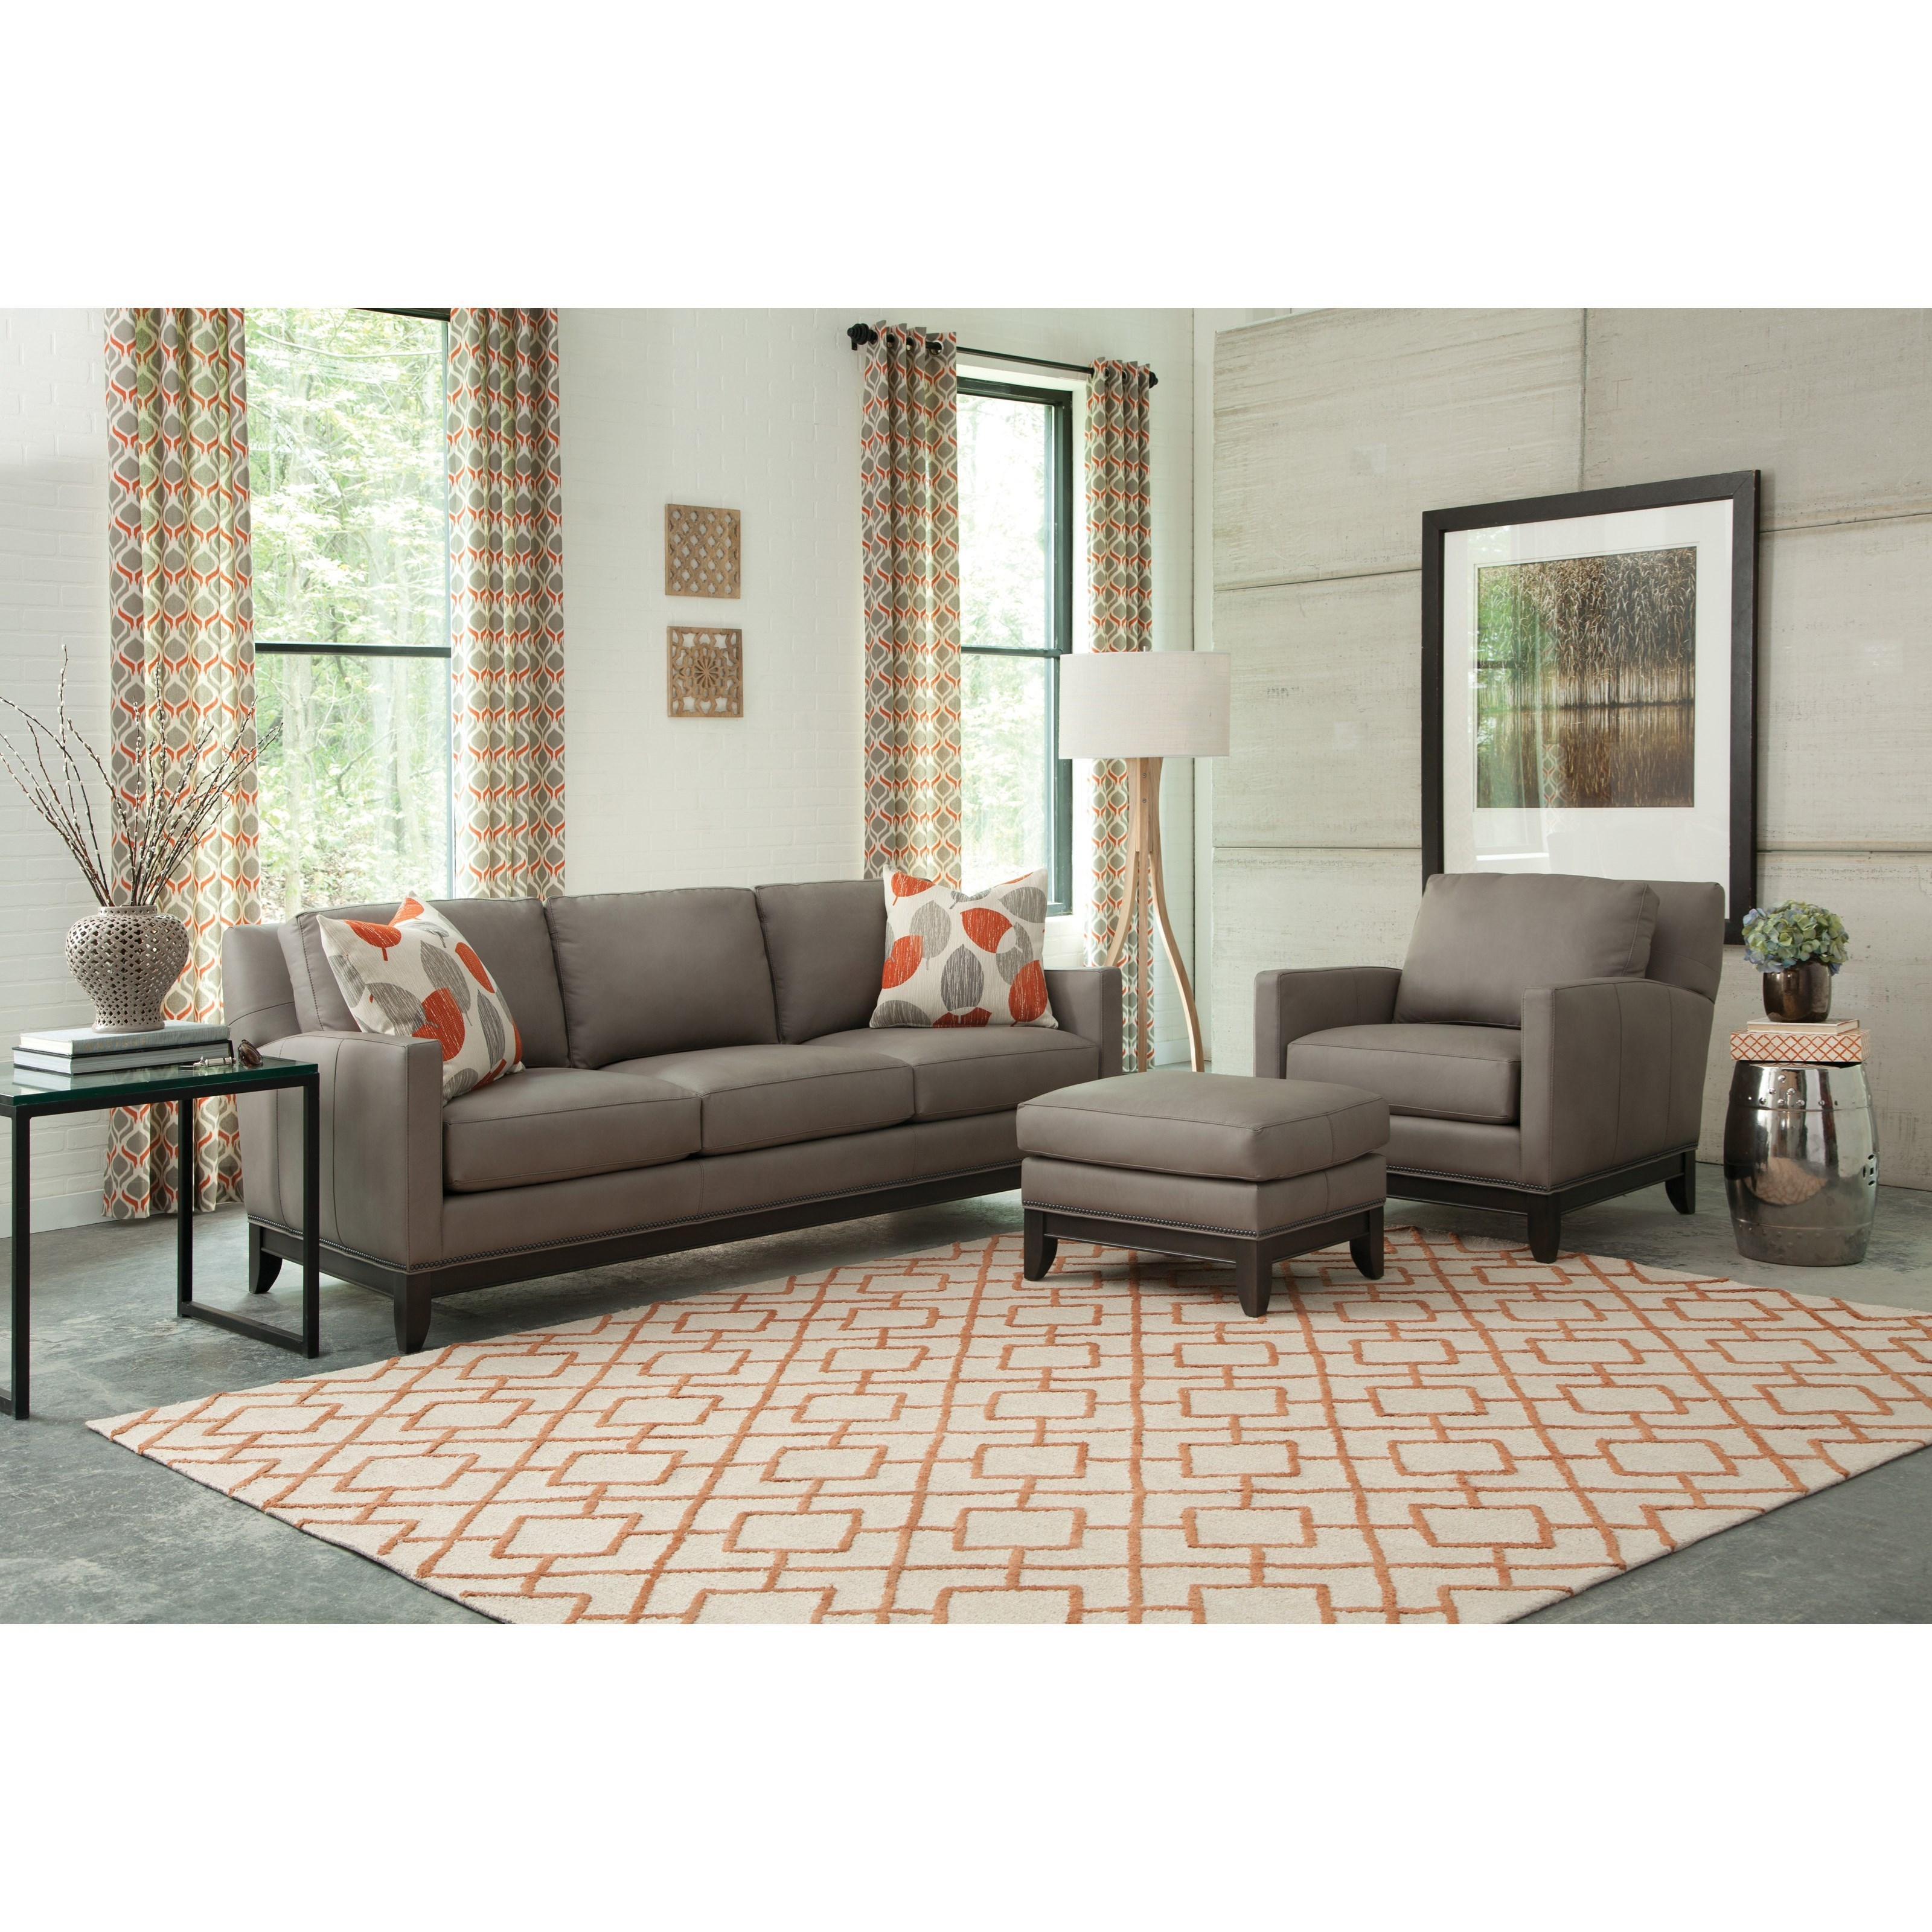 238 Stationary Living Room Group by Smith Brothers at Pilgrim Furniture City